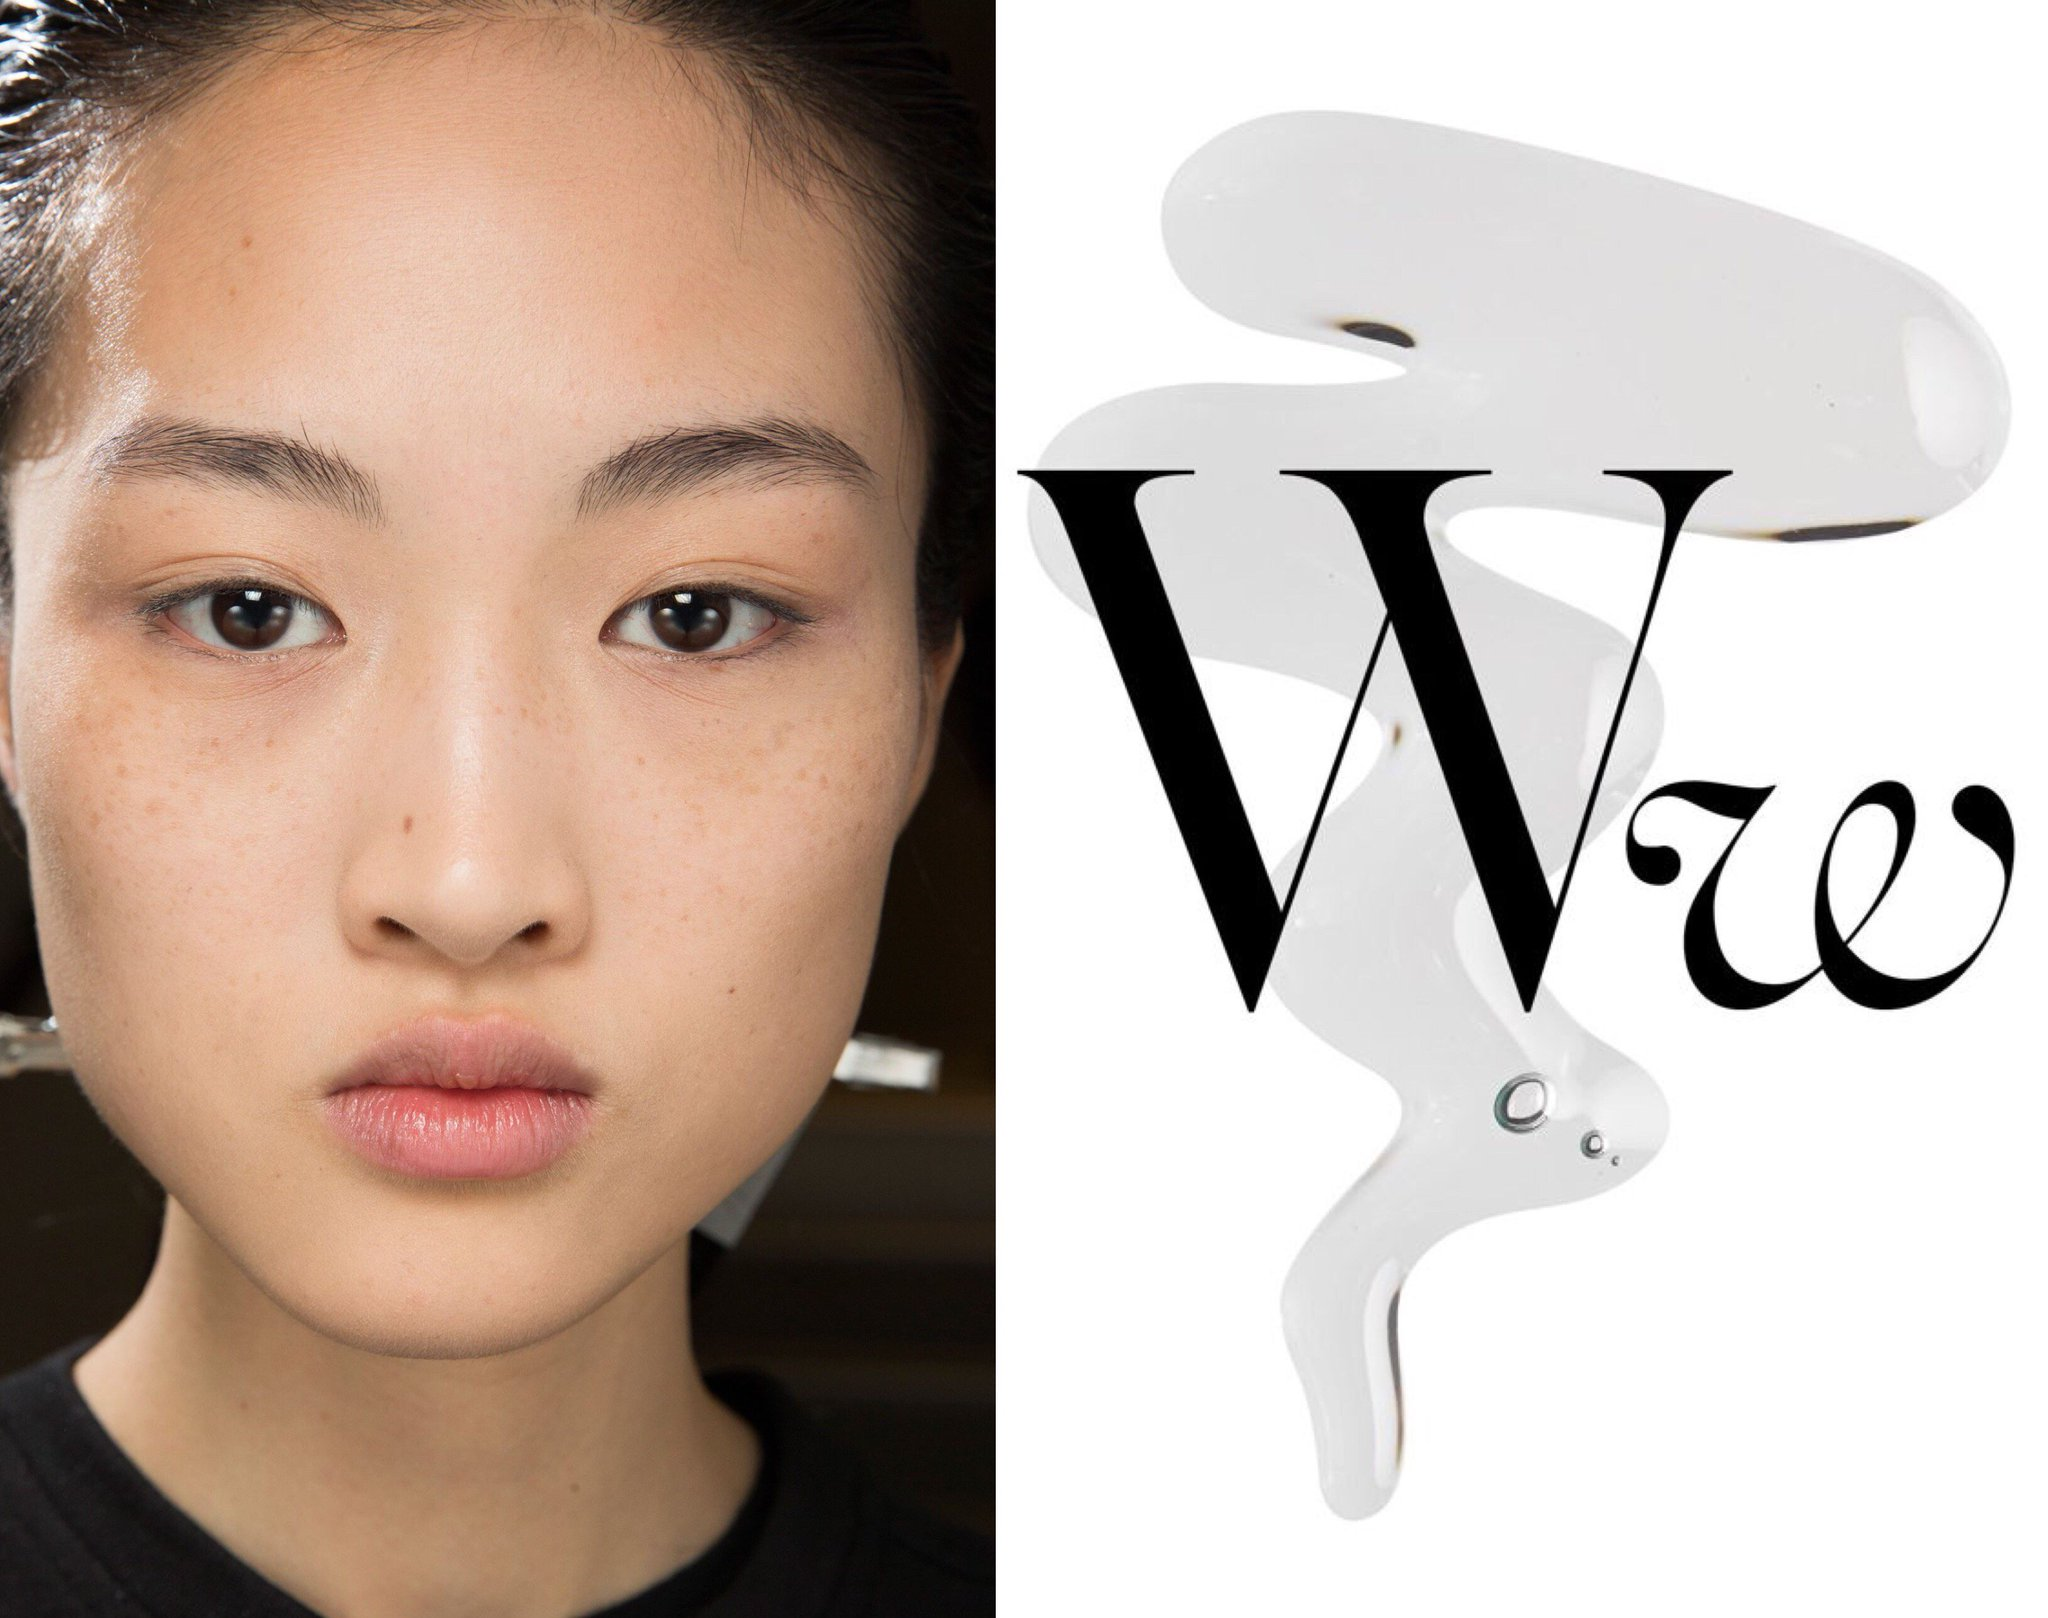 This week in the Vogue Skincare Alphabet - W is for Water: https://t.co/aS7VboxiO9 https://t.co/3MFOTmc3Re